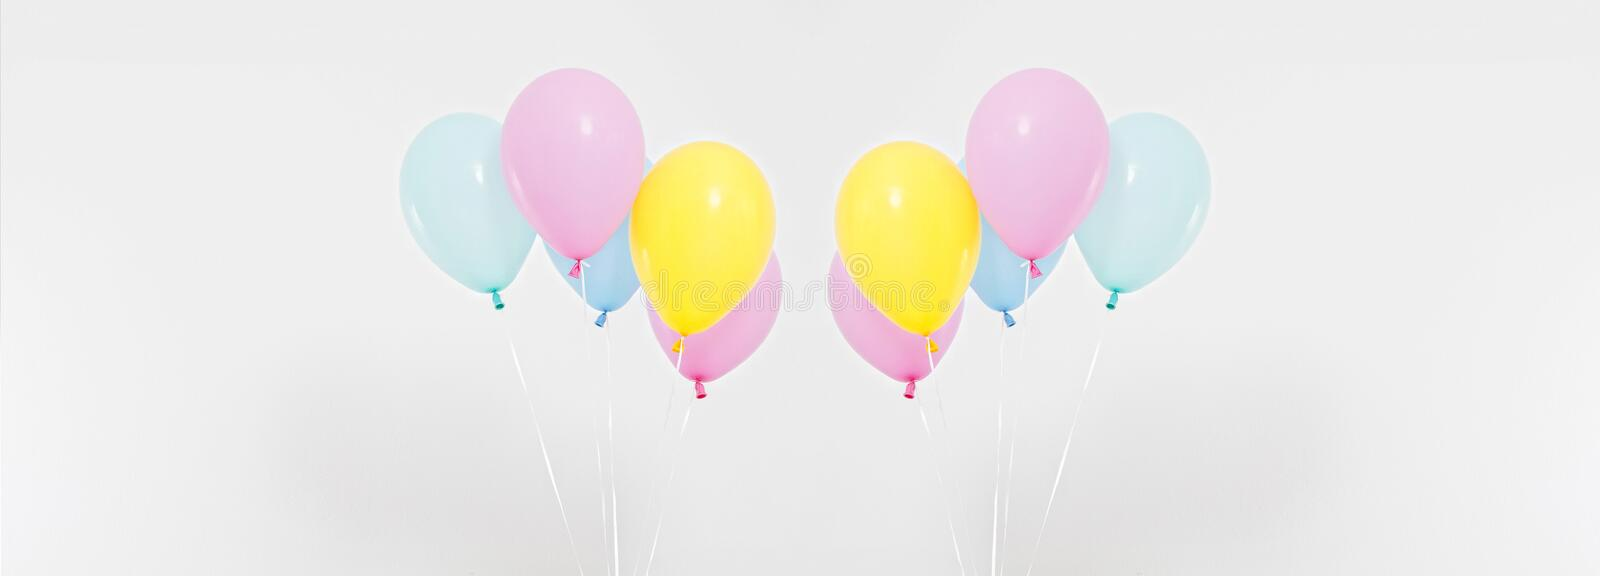 Colorful party balloons background collage, set. Celebration, holidays, summer concept. Design template. billboard or banner blank stock photo